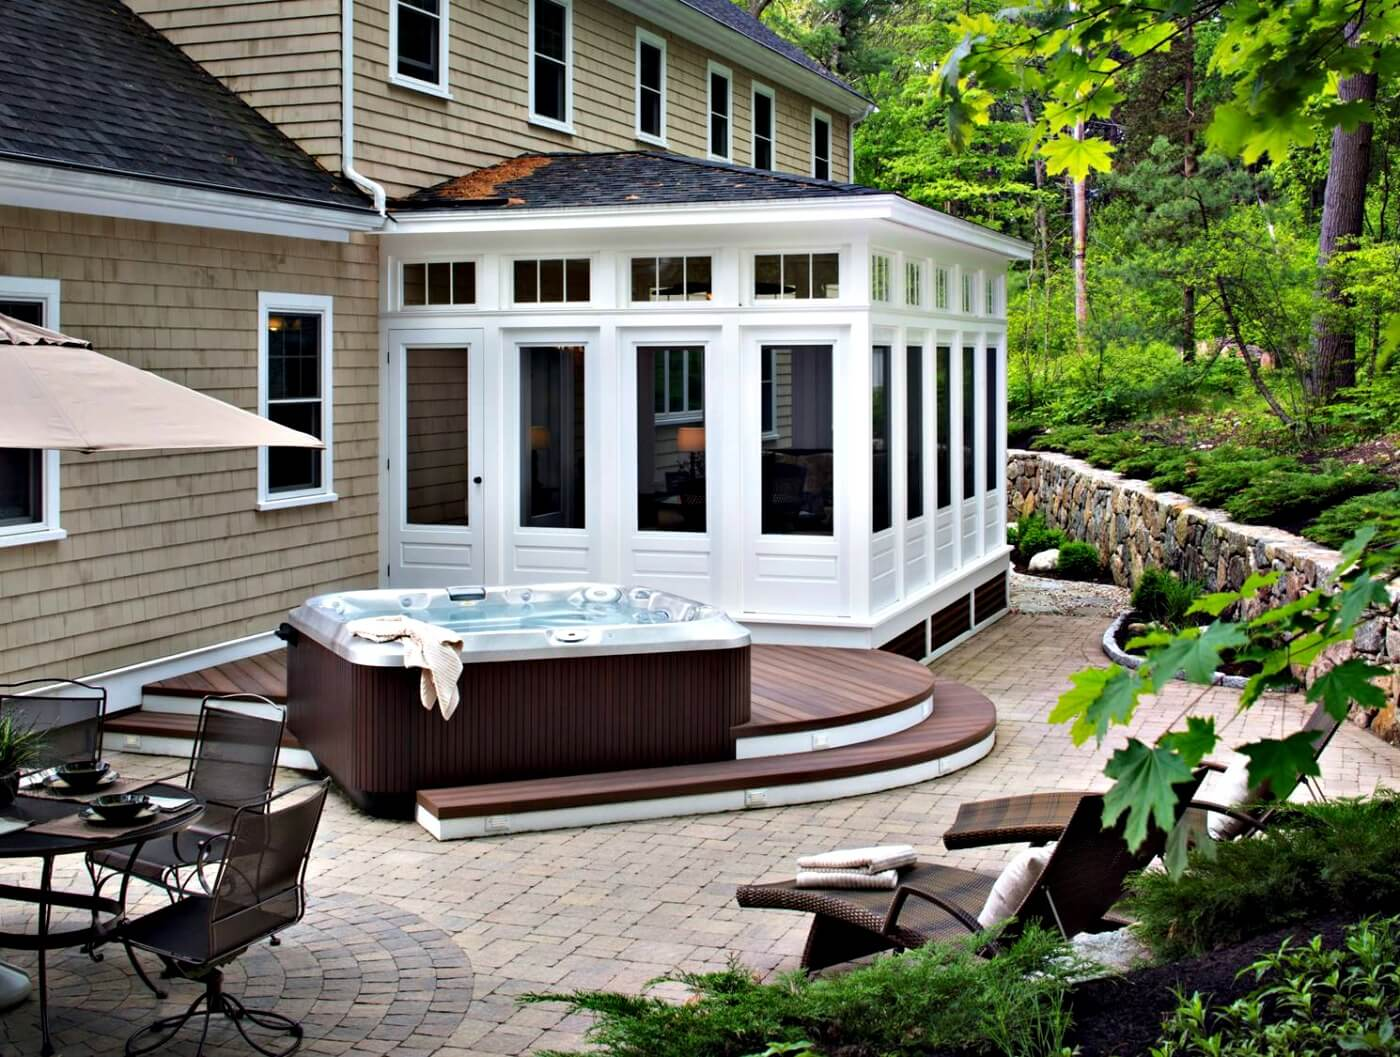 Sunroom and patio with hot tub deck